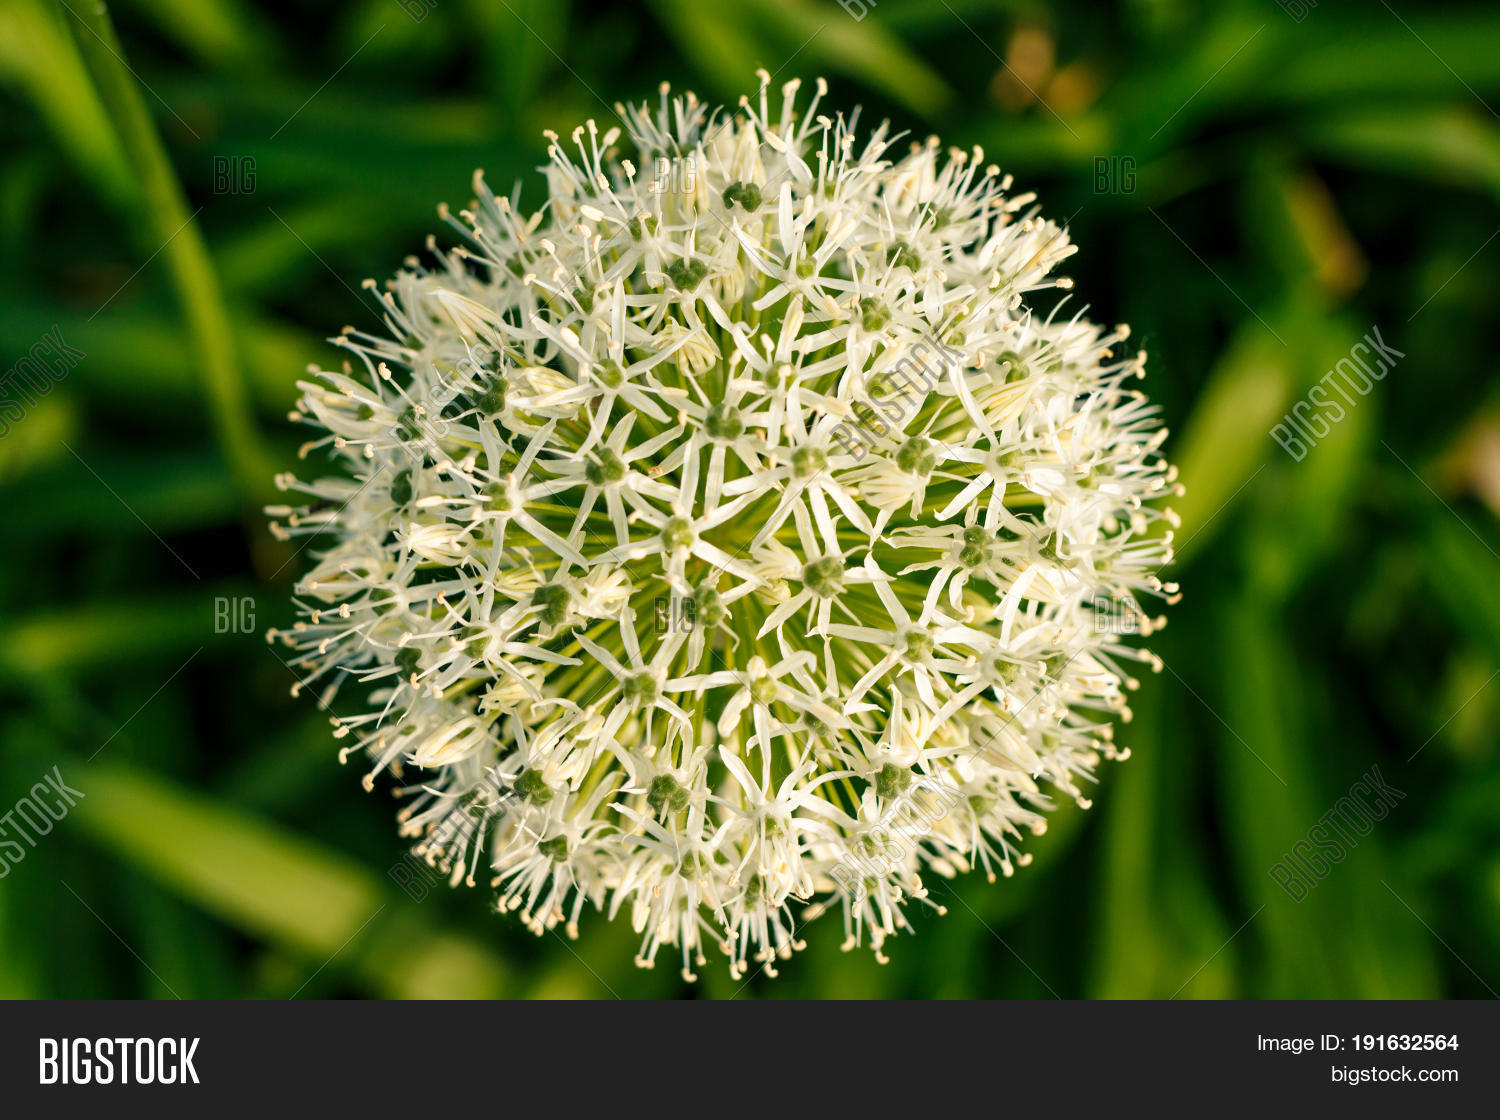 Zierlauch Allium White Green Ball Image Photo Free Trial Bigstock